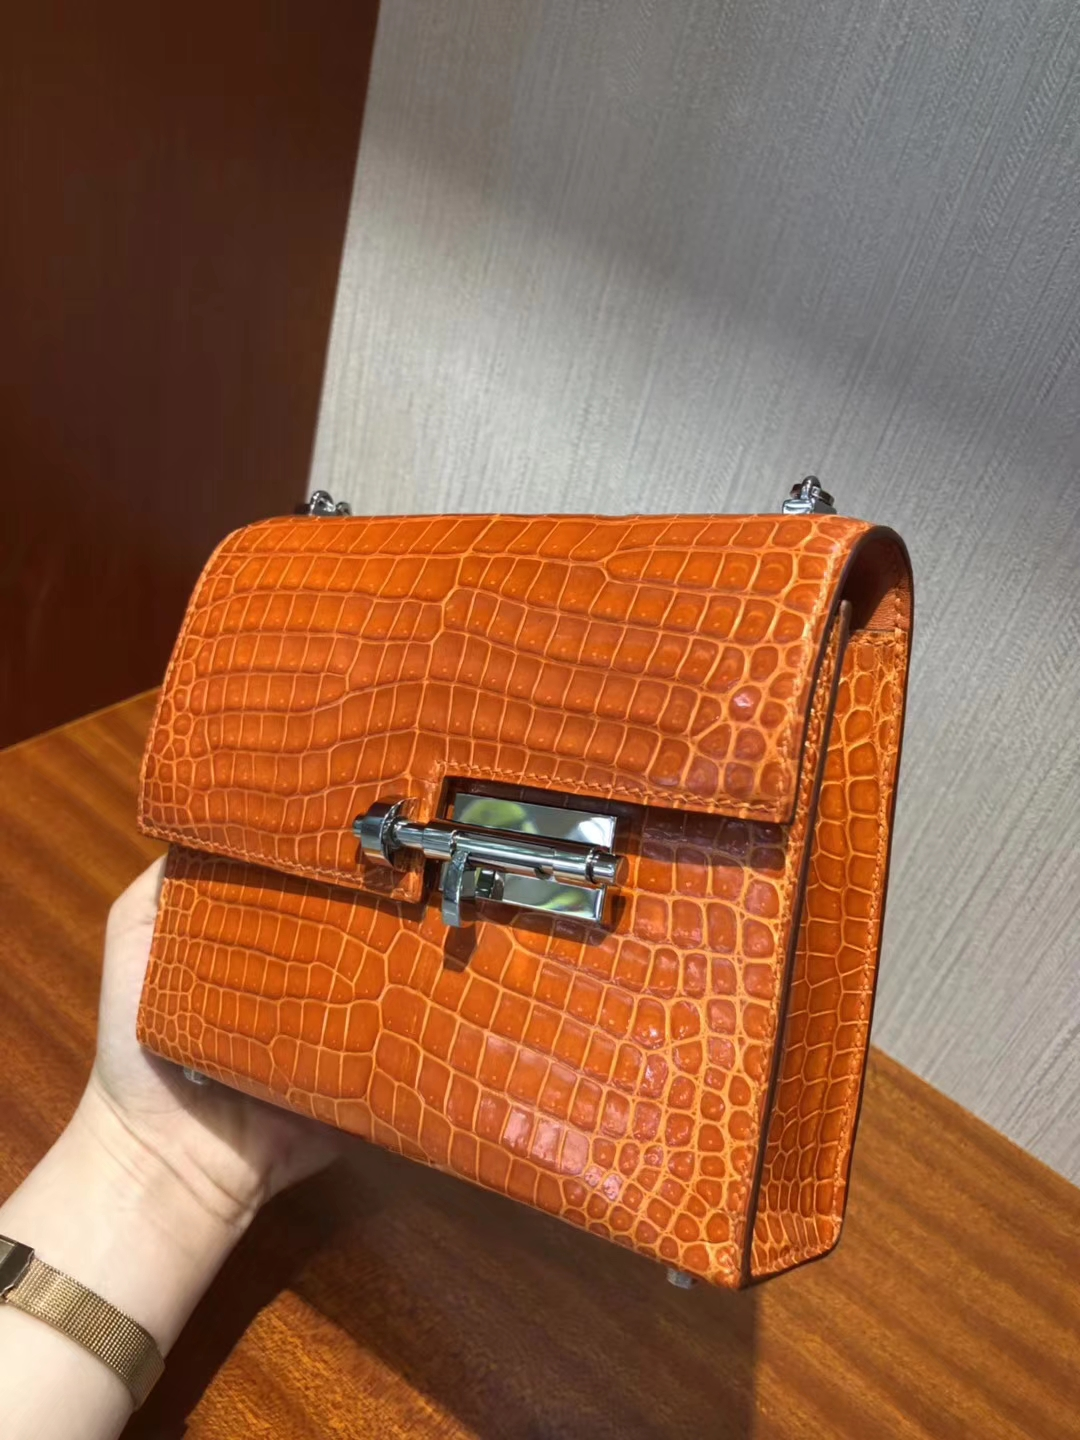 New Hermes 9J Orange Shiny Crocodile Leather Verrou Shoulder Bag17.5cm